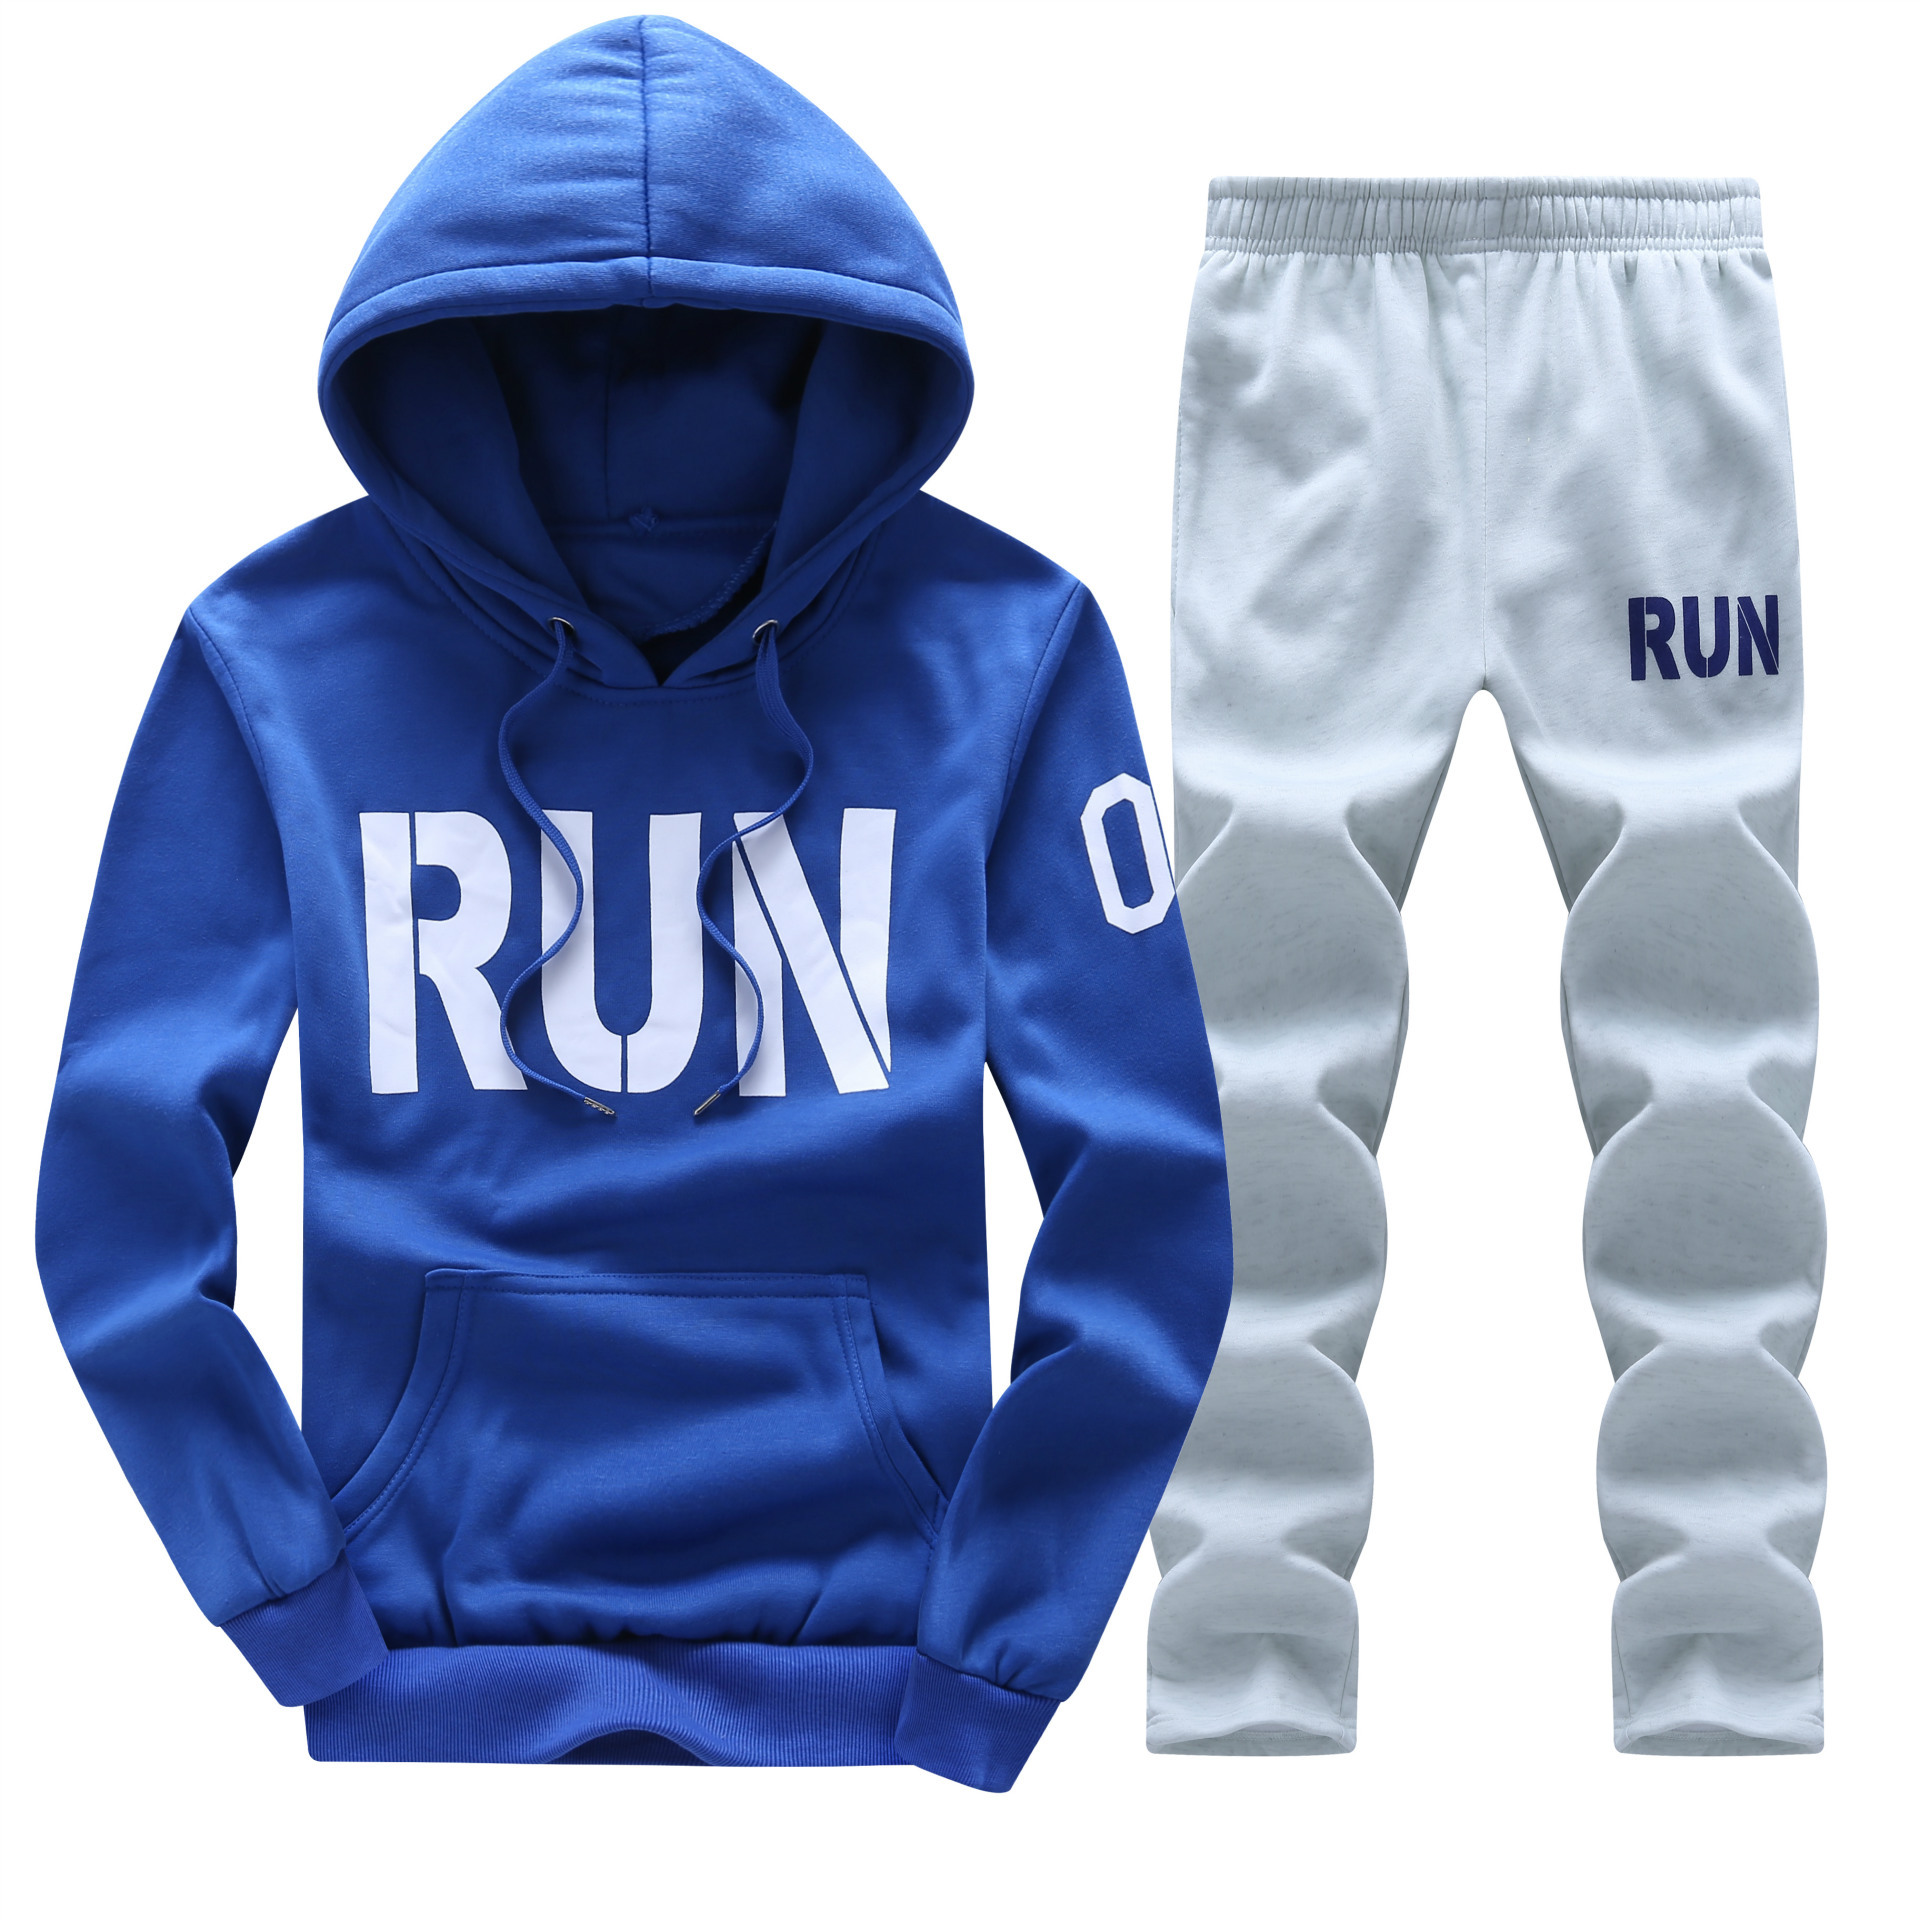 2018 New Fashion Mens Set Male Clothing Suits Men Sweatshirts Long Sleeved Casual Sweater Hooded Sportswear for Men